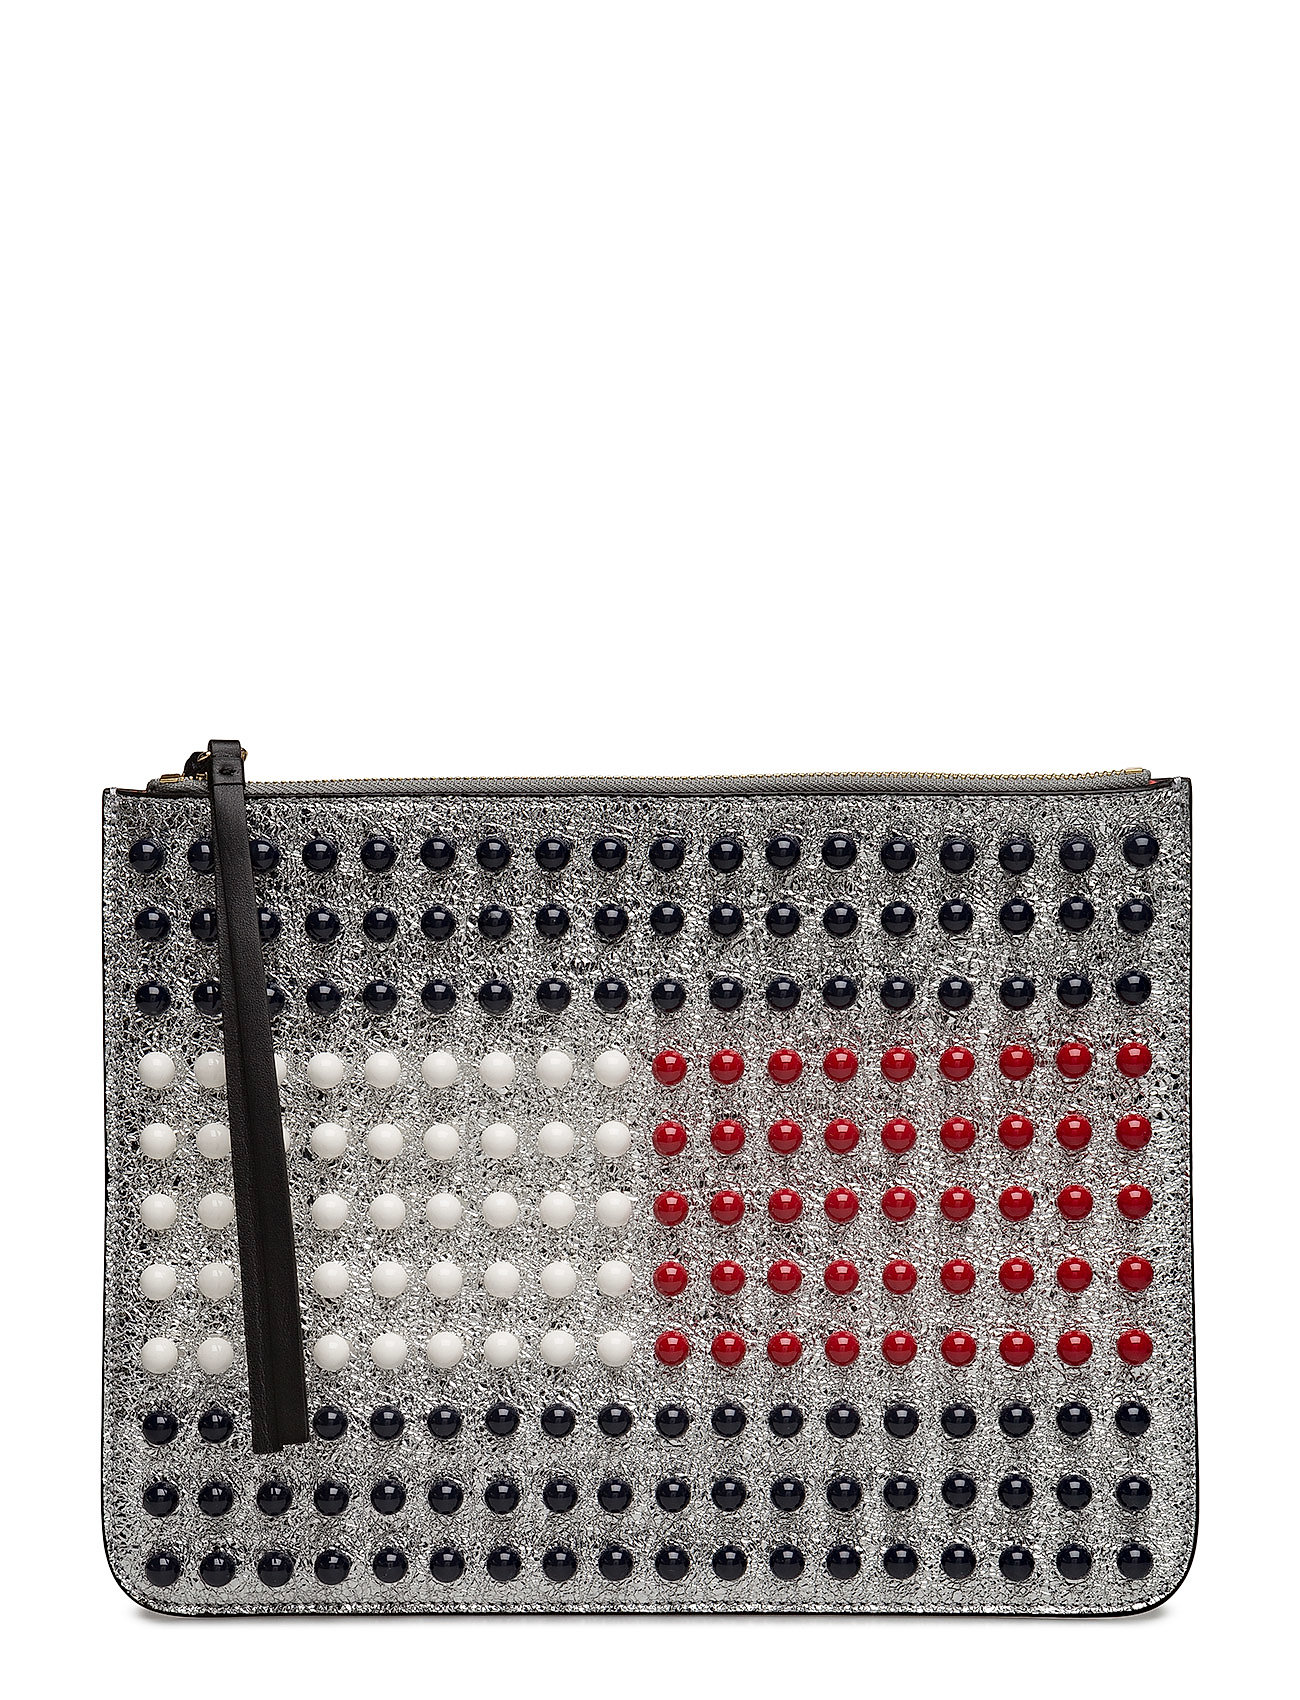 Image of Tommy Icon Pearl Fla Bags Clutches Multi/mønstret Tommy Hilfiger (2980992731)